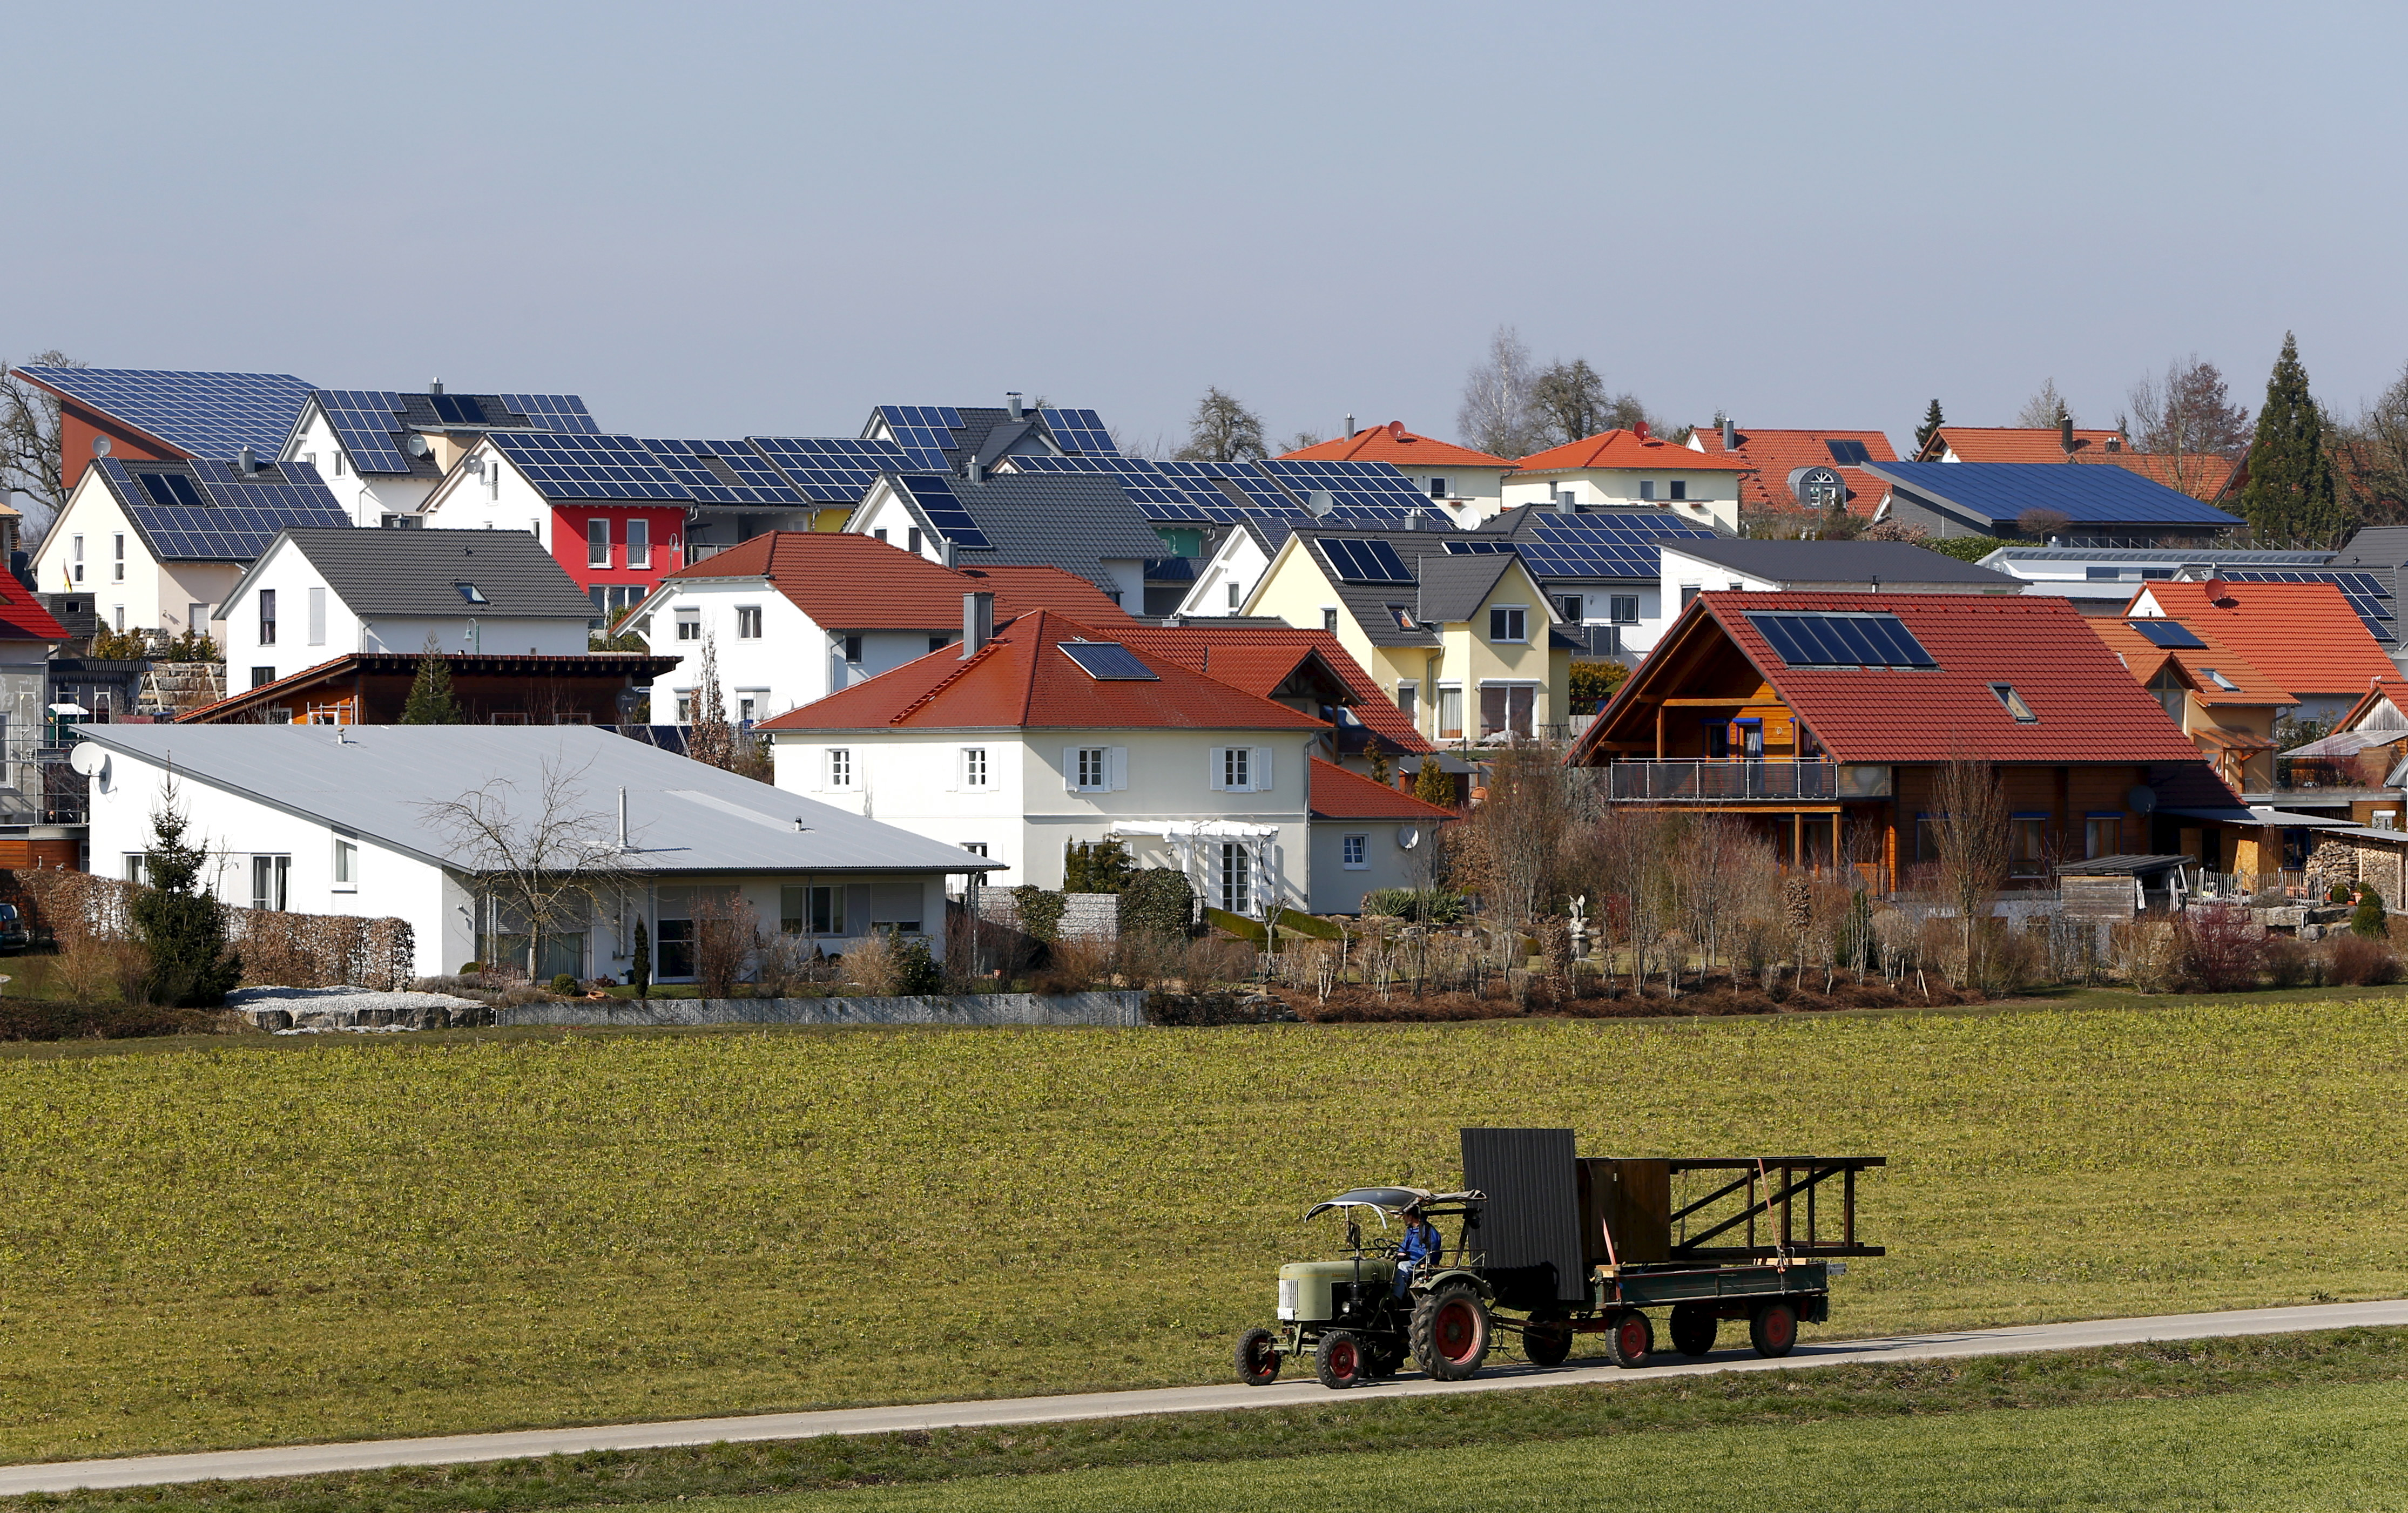 A general view shows the village of Wolpertshausen near Schwaebisch Hall, Germany, March 18, 2016. Picture taken March 18.  REUTERS/Michaela Rehle/Files